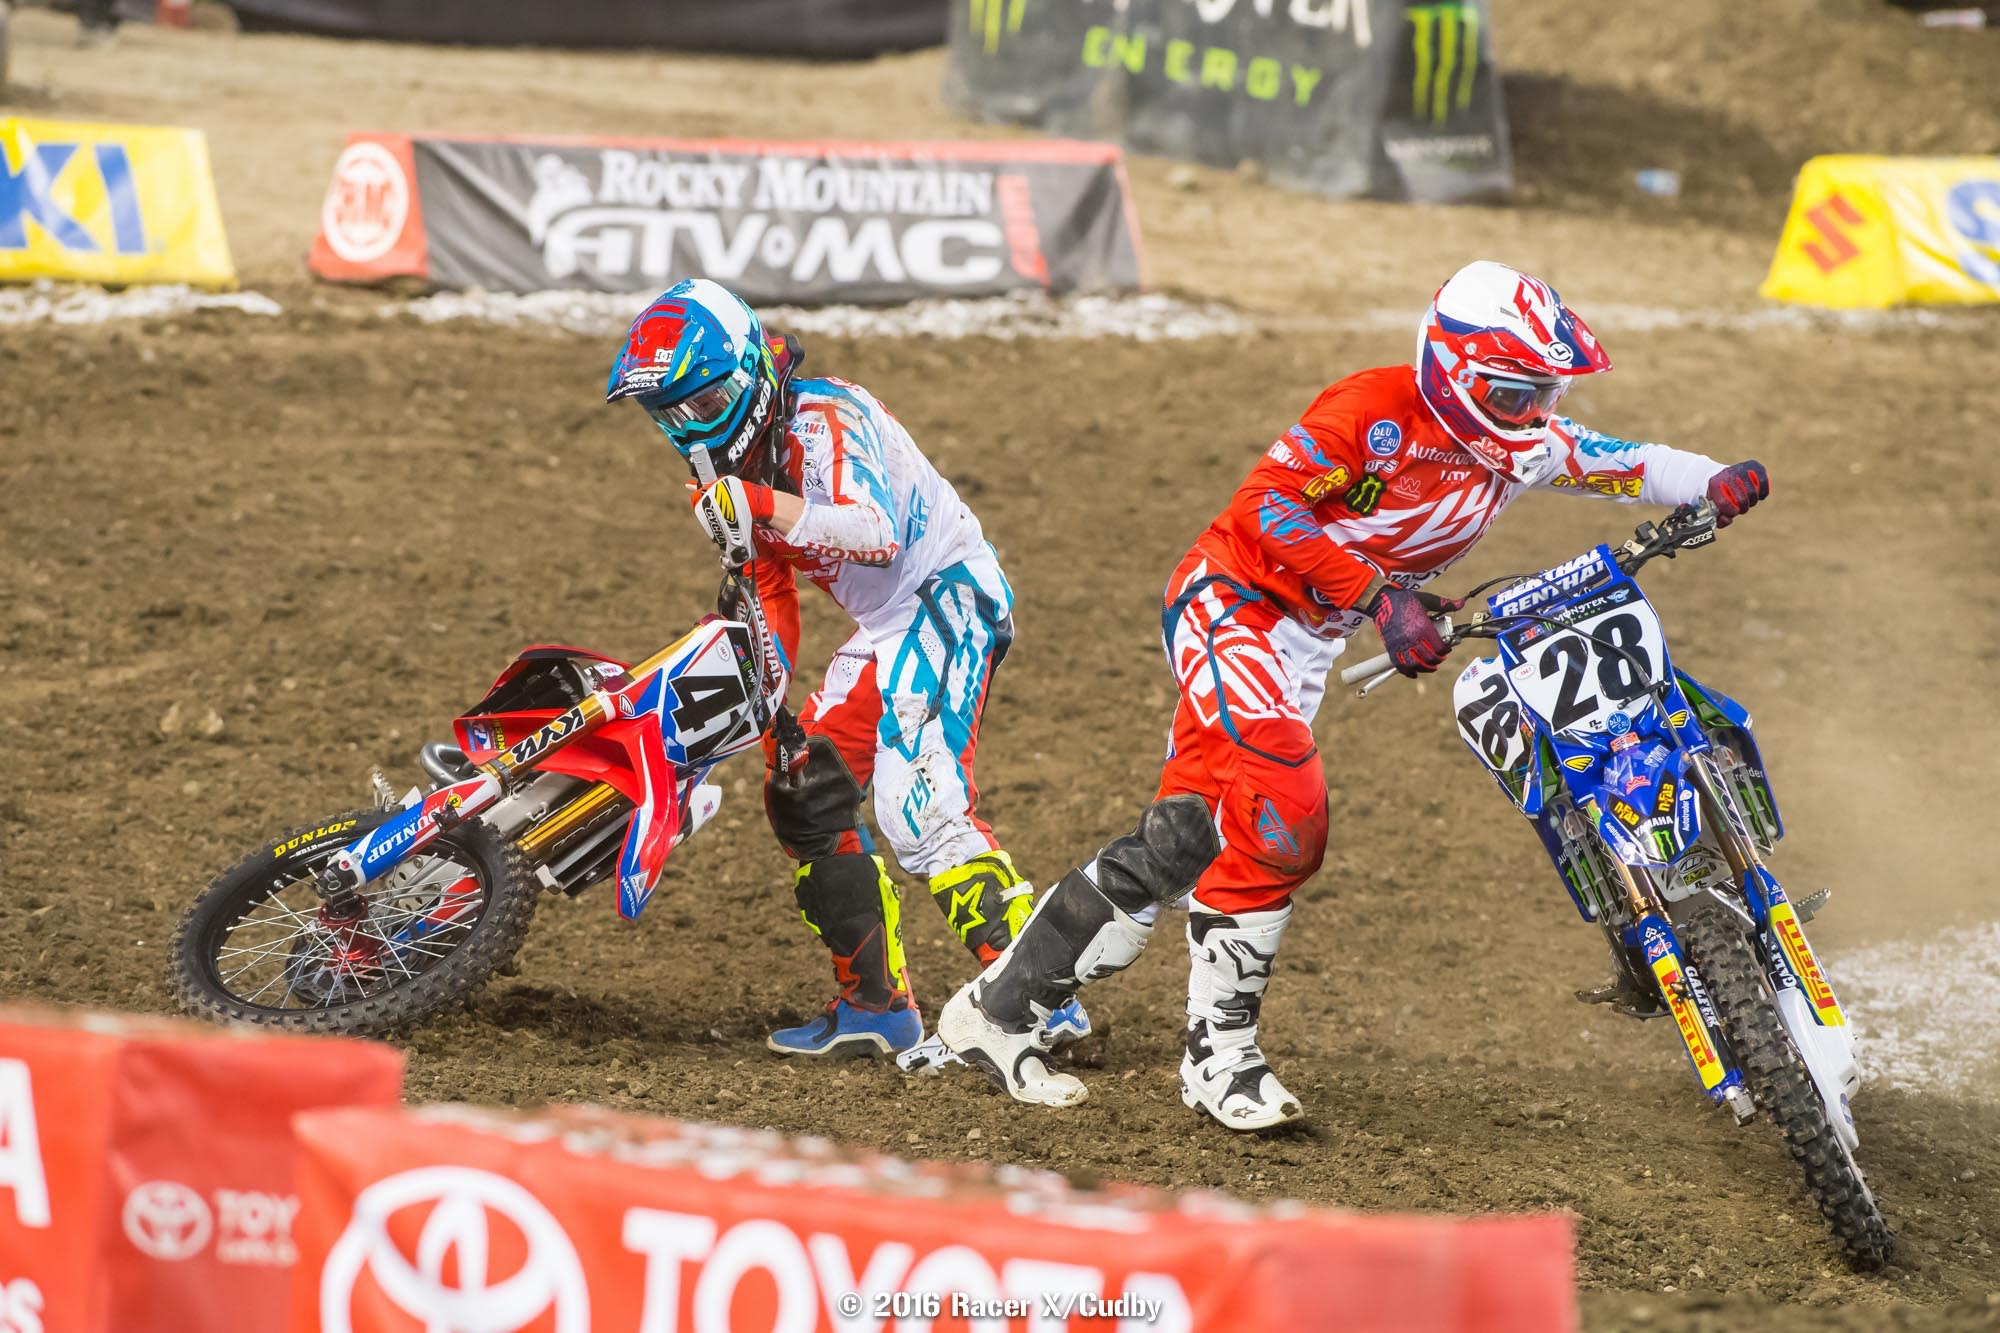 Weston Peick and Trey Canard both went to the semi after going down in the first turn in their heat race.